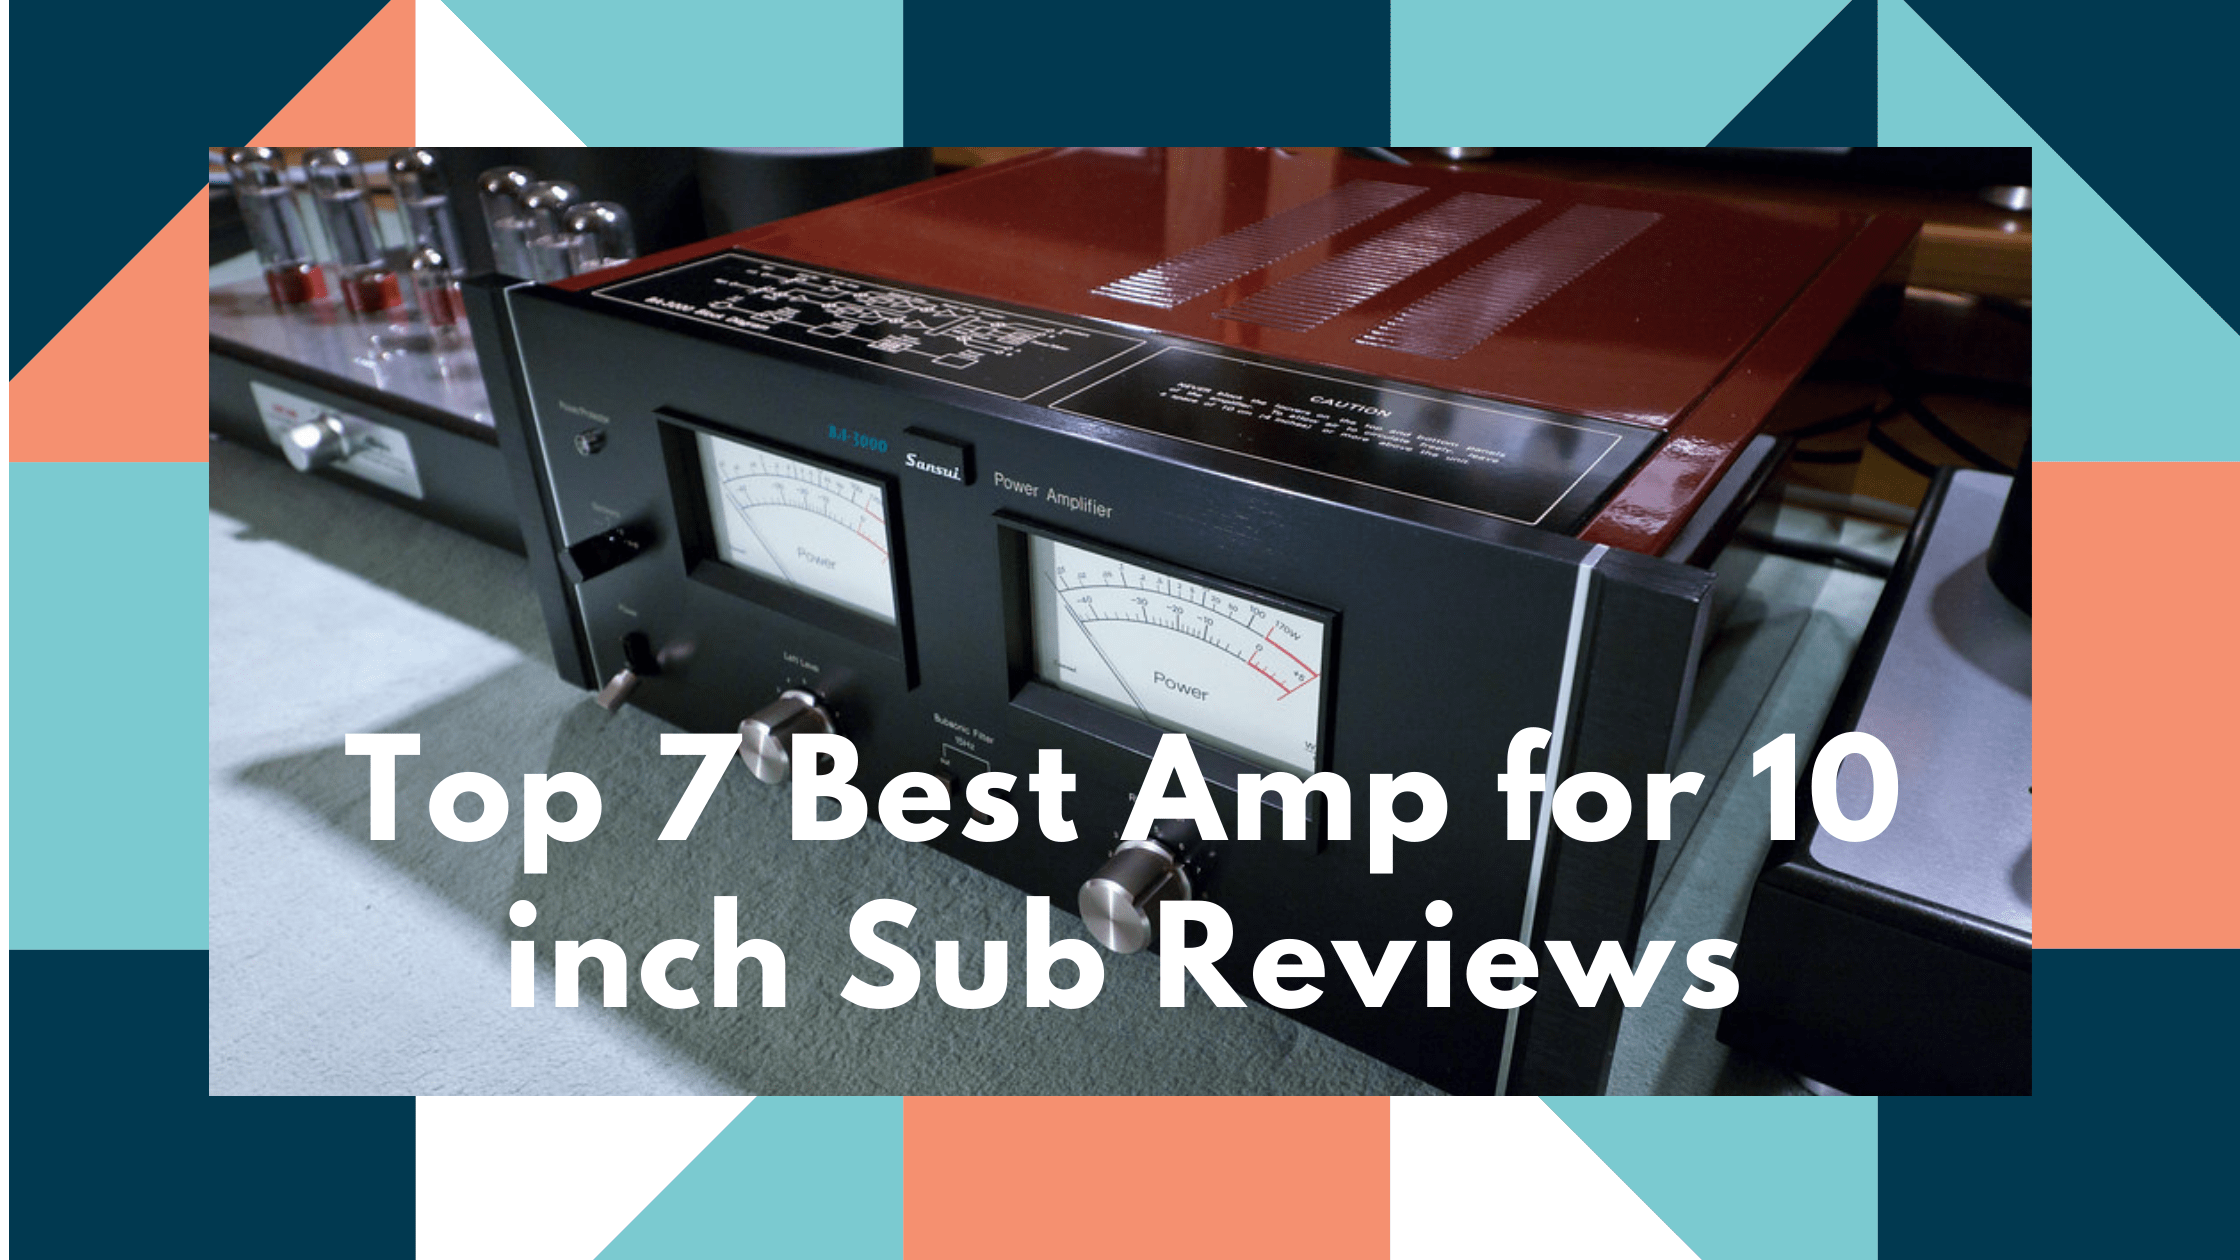 Top-7-Best-amp-for-10-inch-sub-Reviews